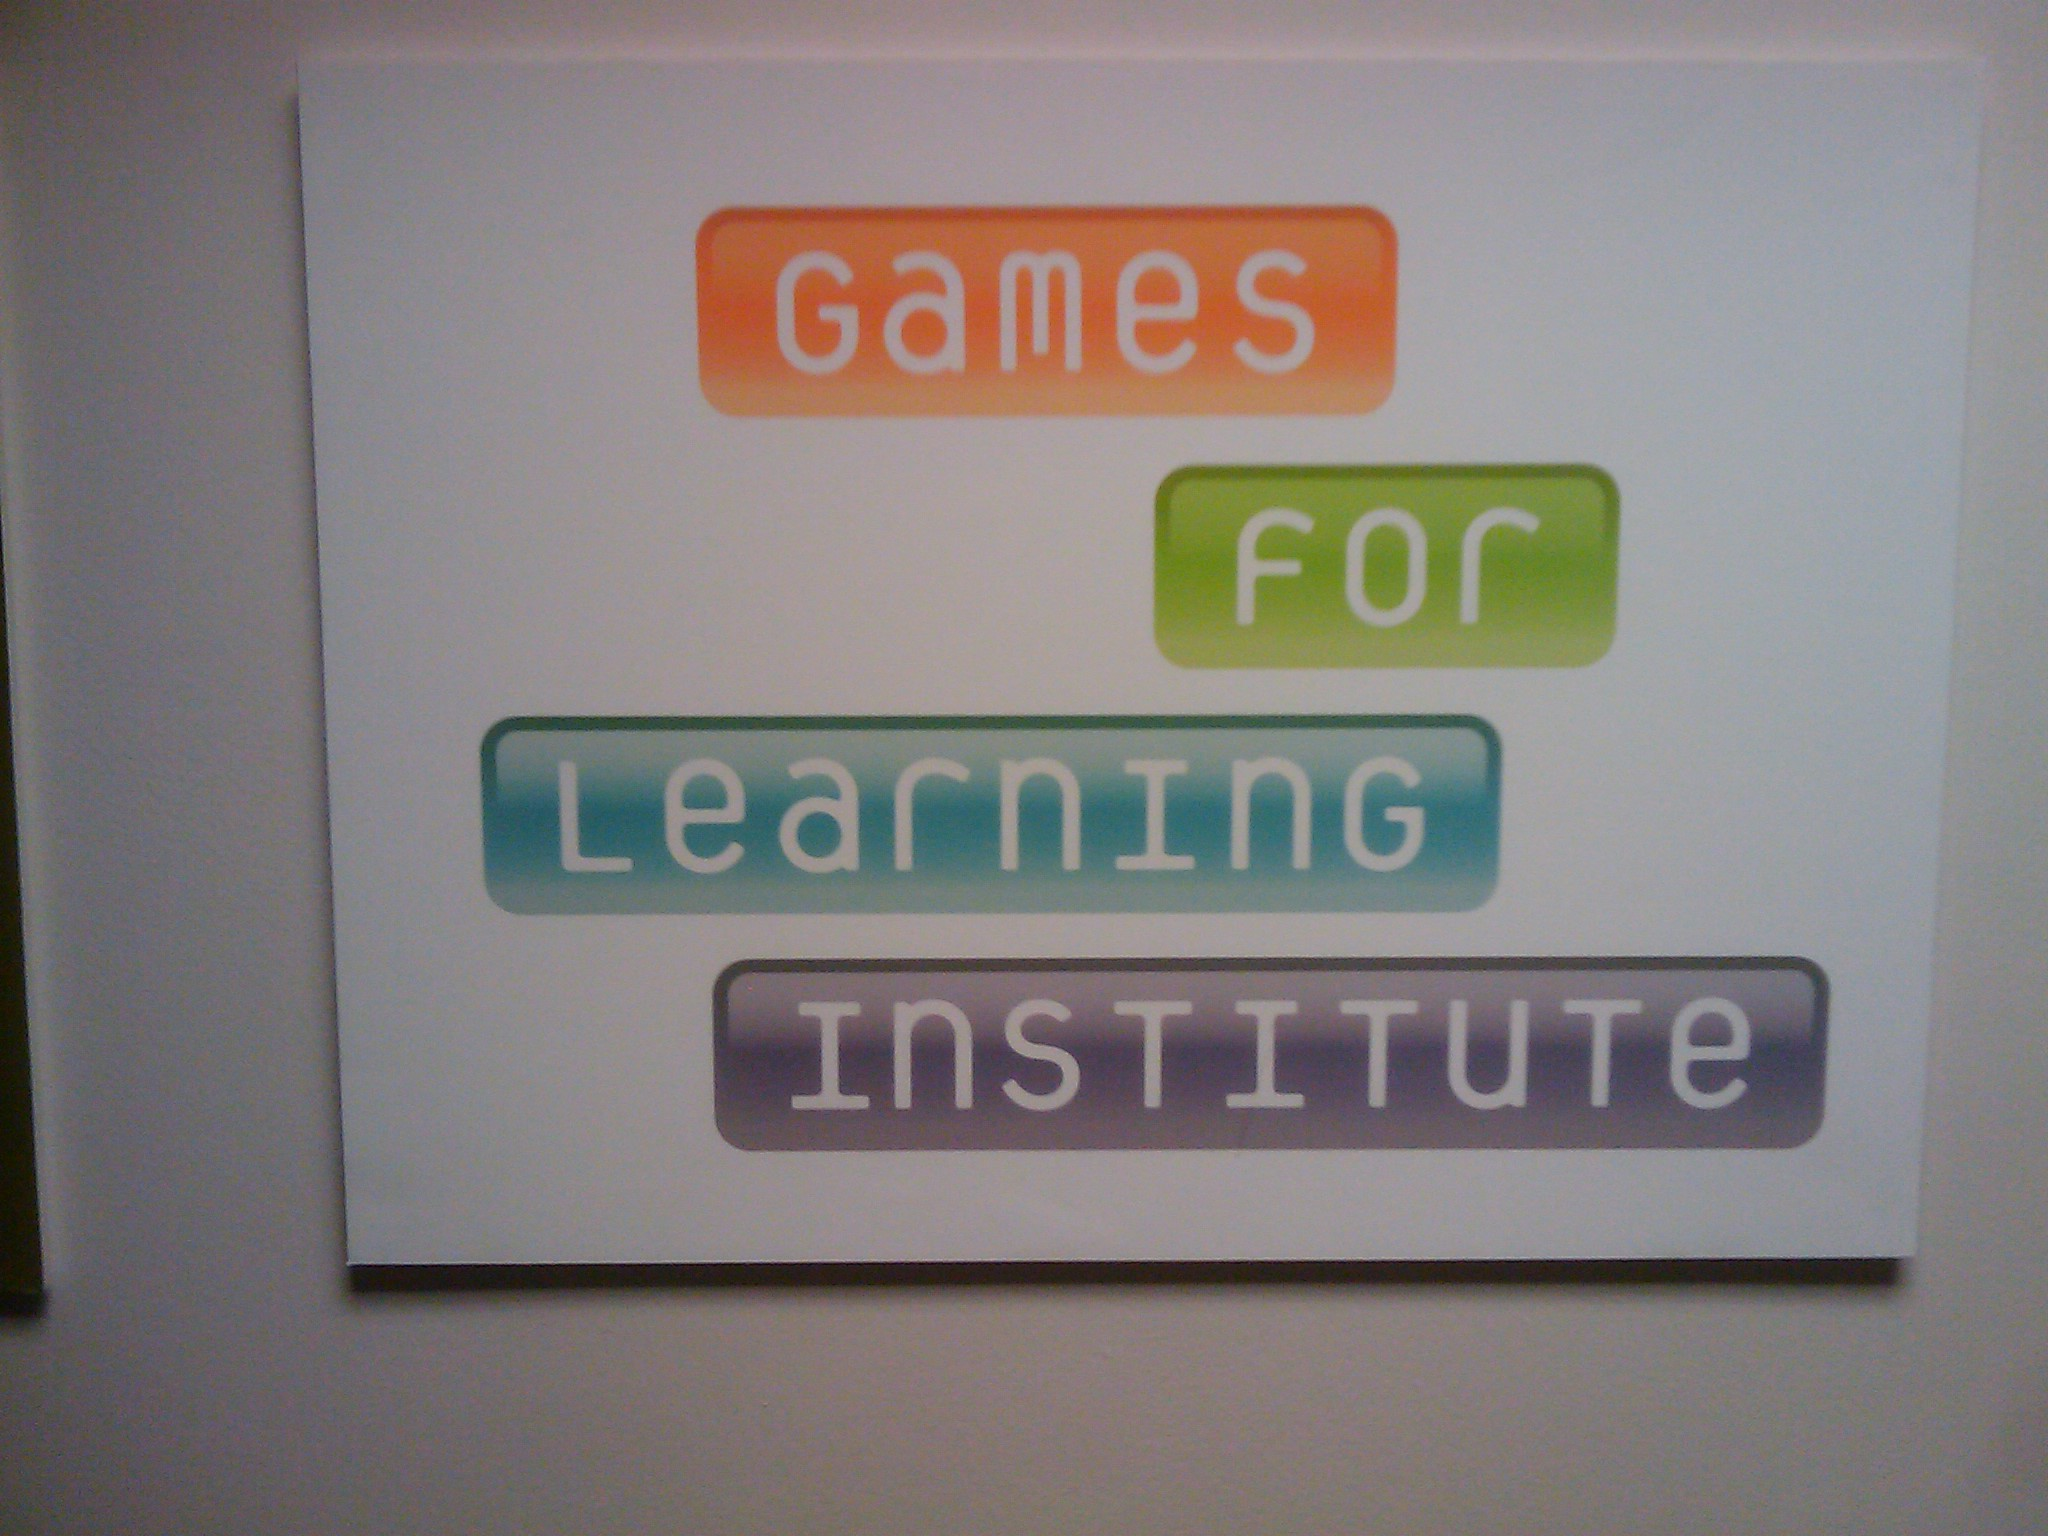 Microsoft and New York University are founding partners of the Games for Learning Institute (G4LI).